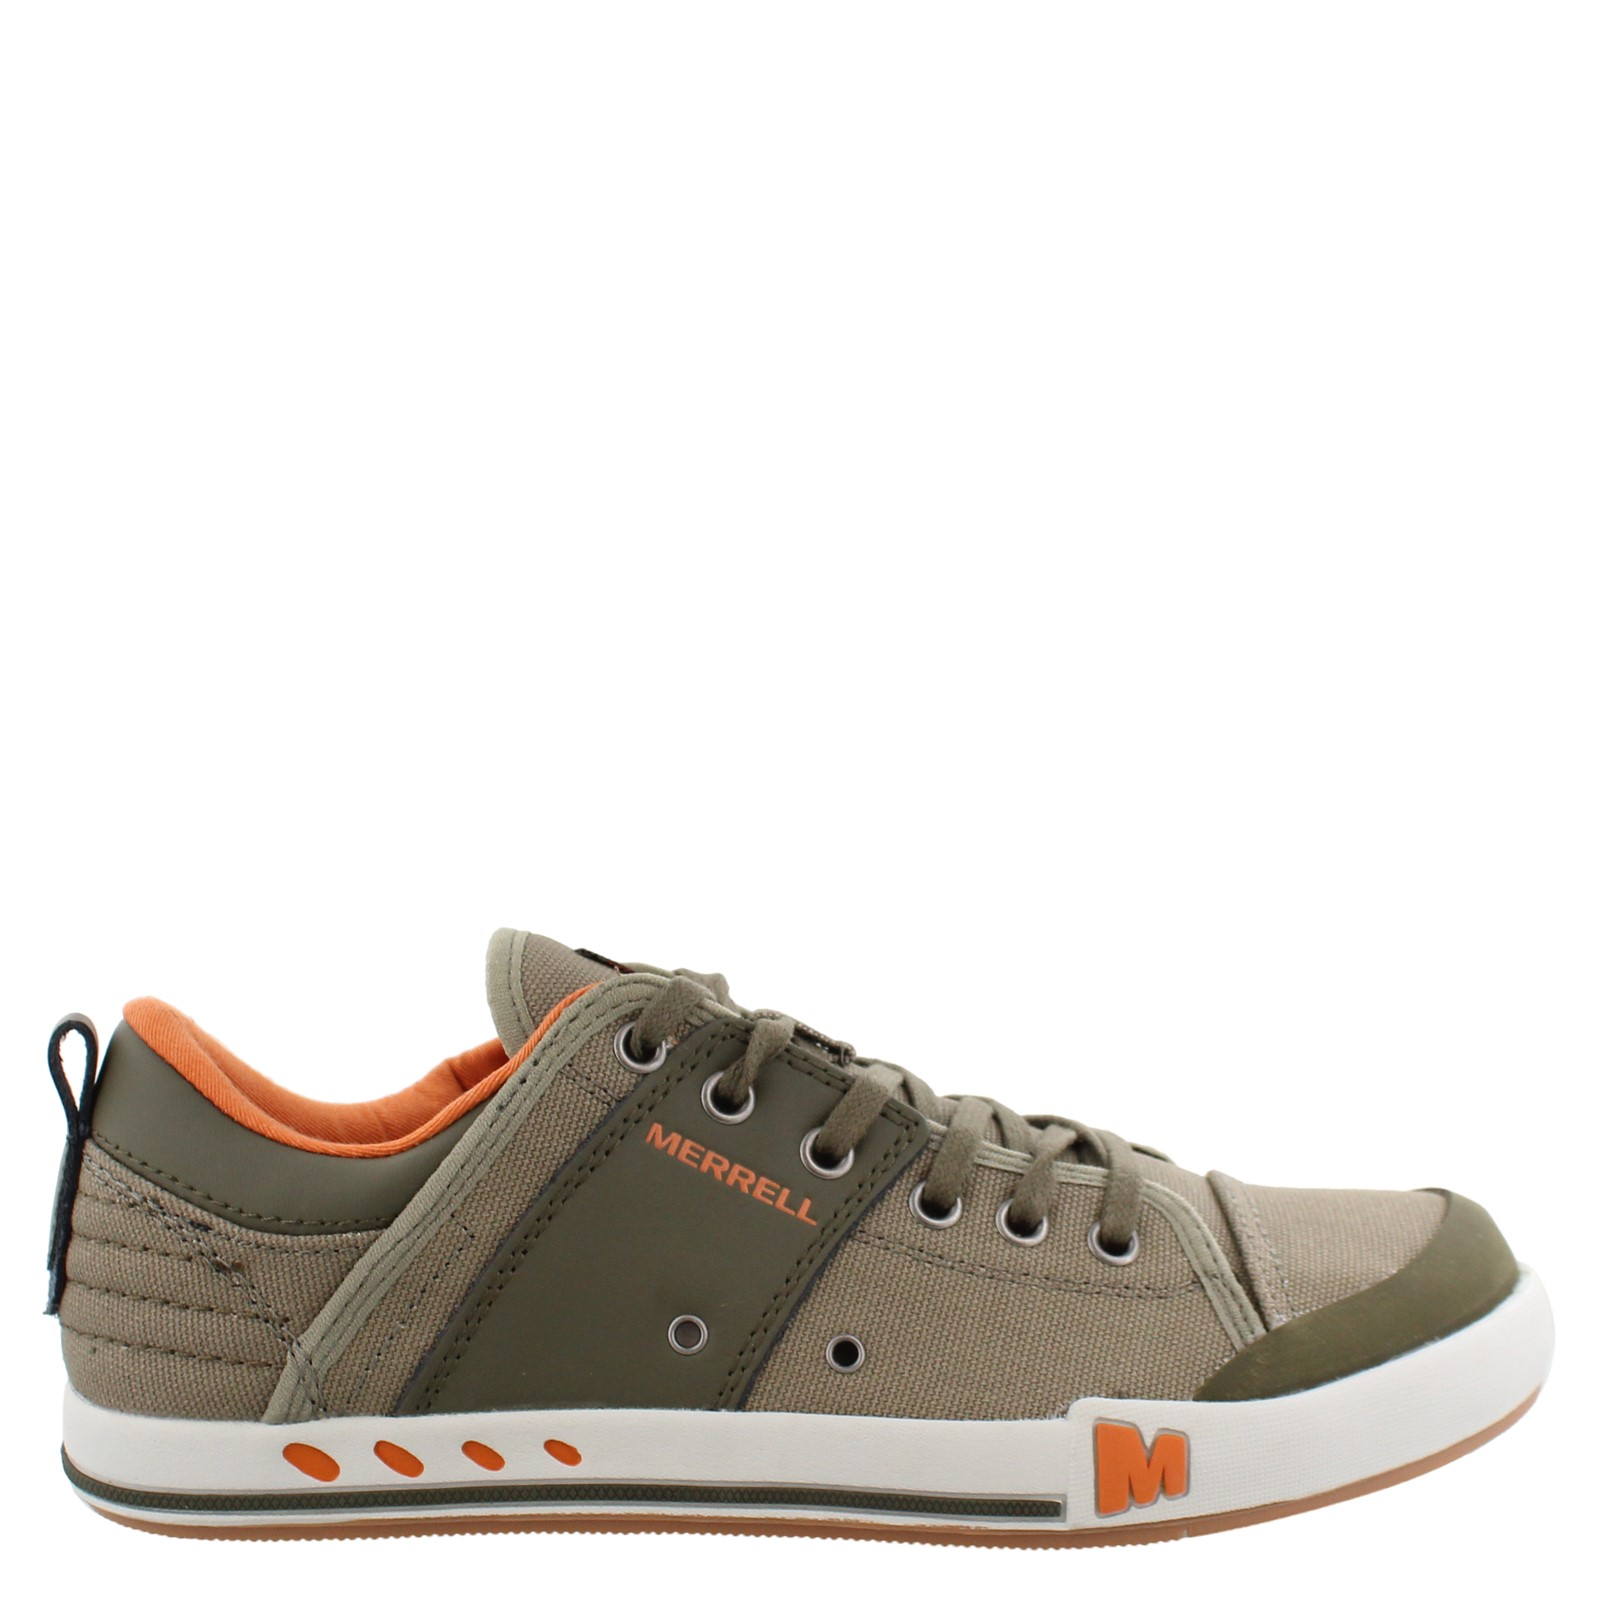 Men's Merrell, Rant Lace Up Casual Sneakers